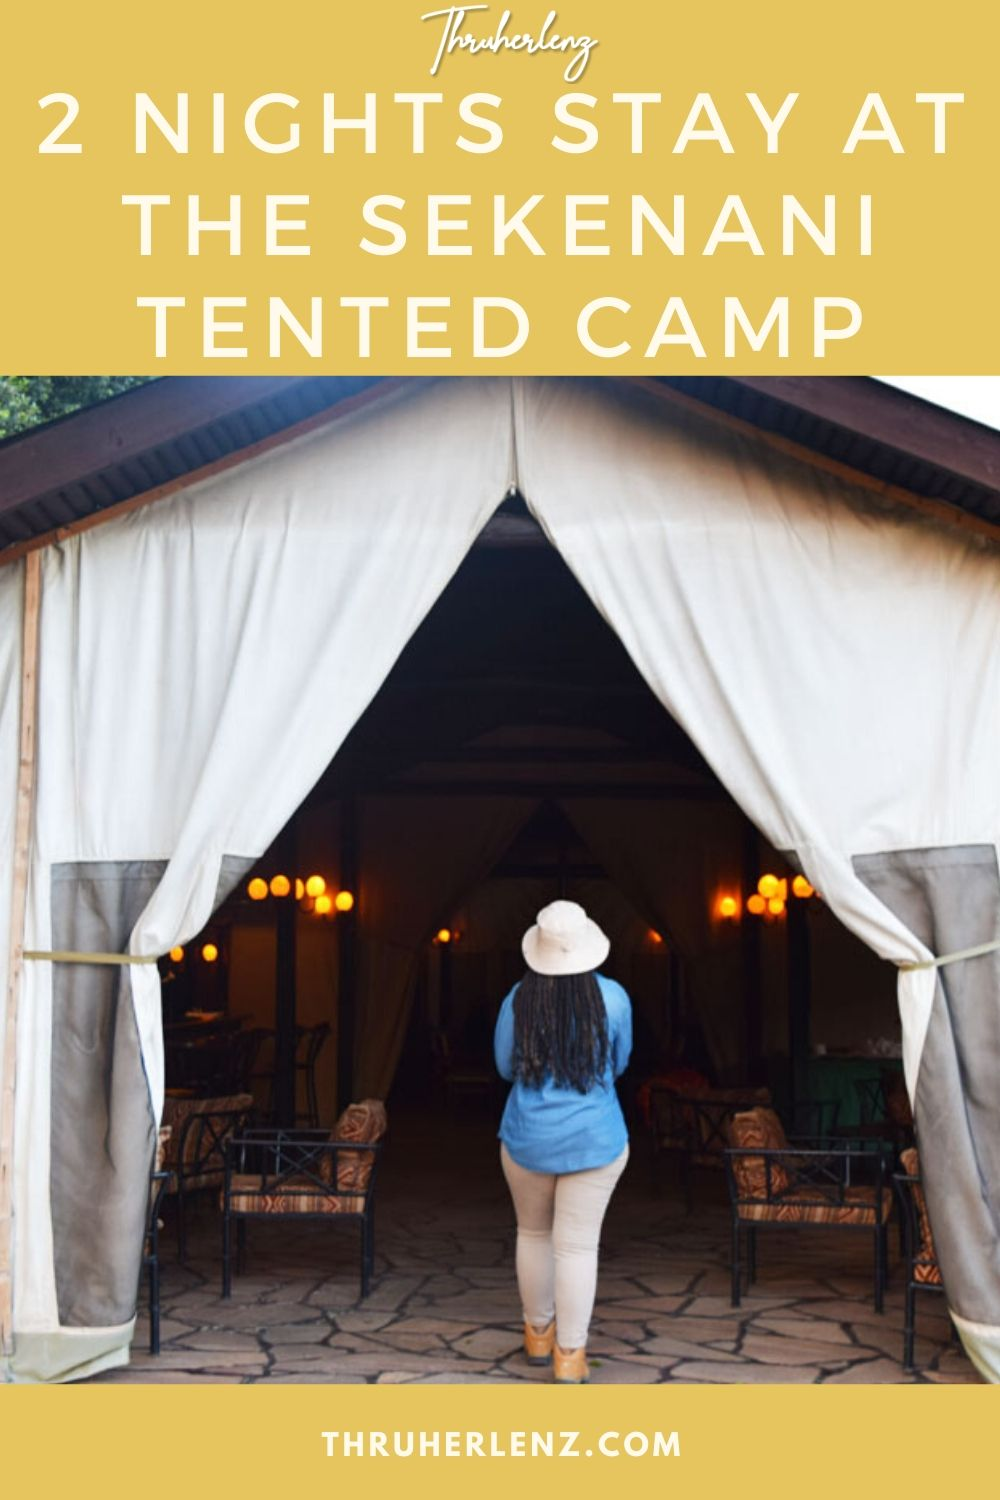 2 Nights Stay at the Sekenani Tented Camp